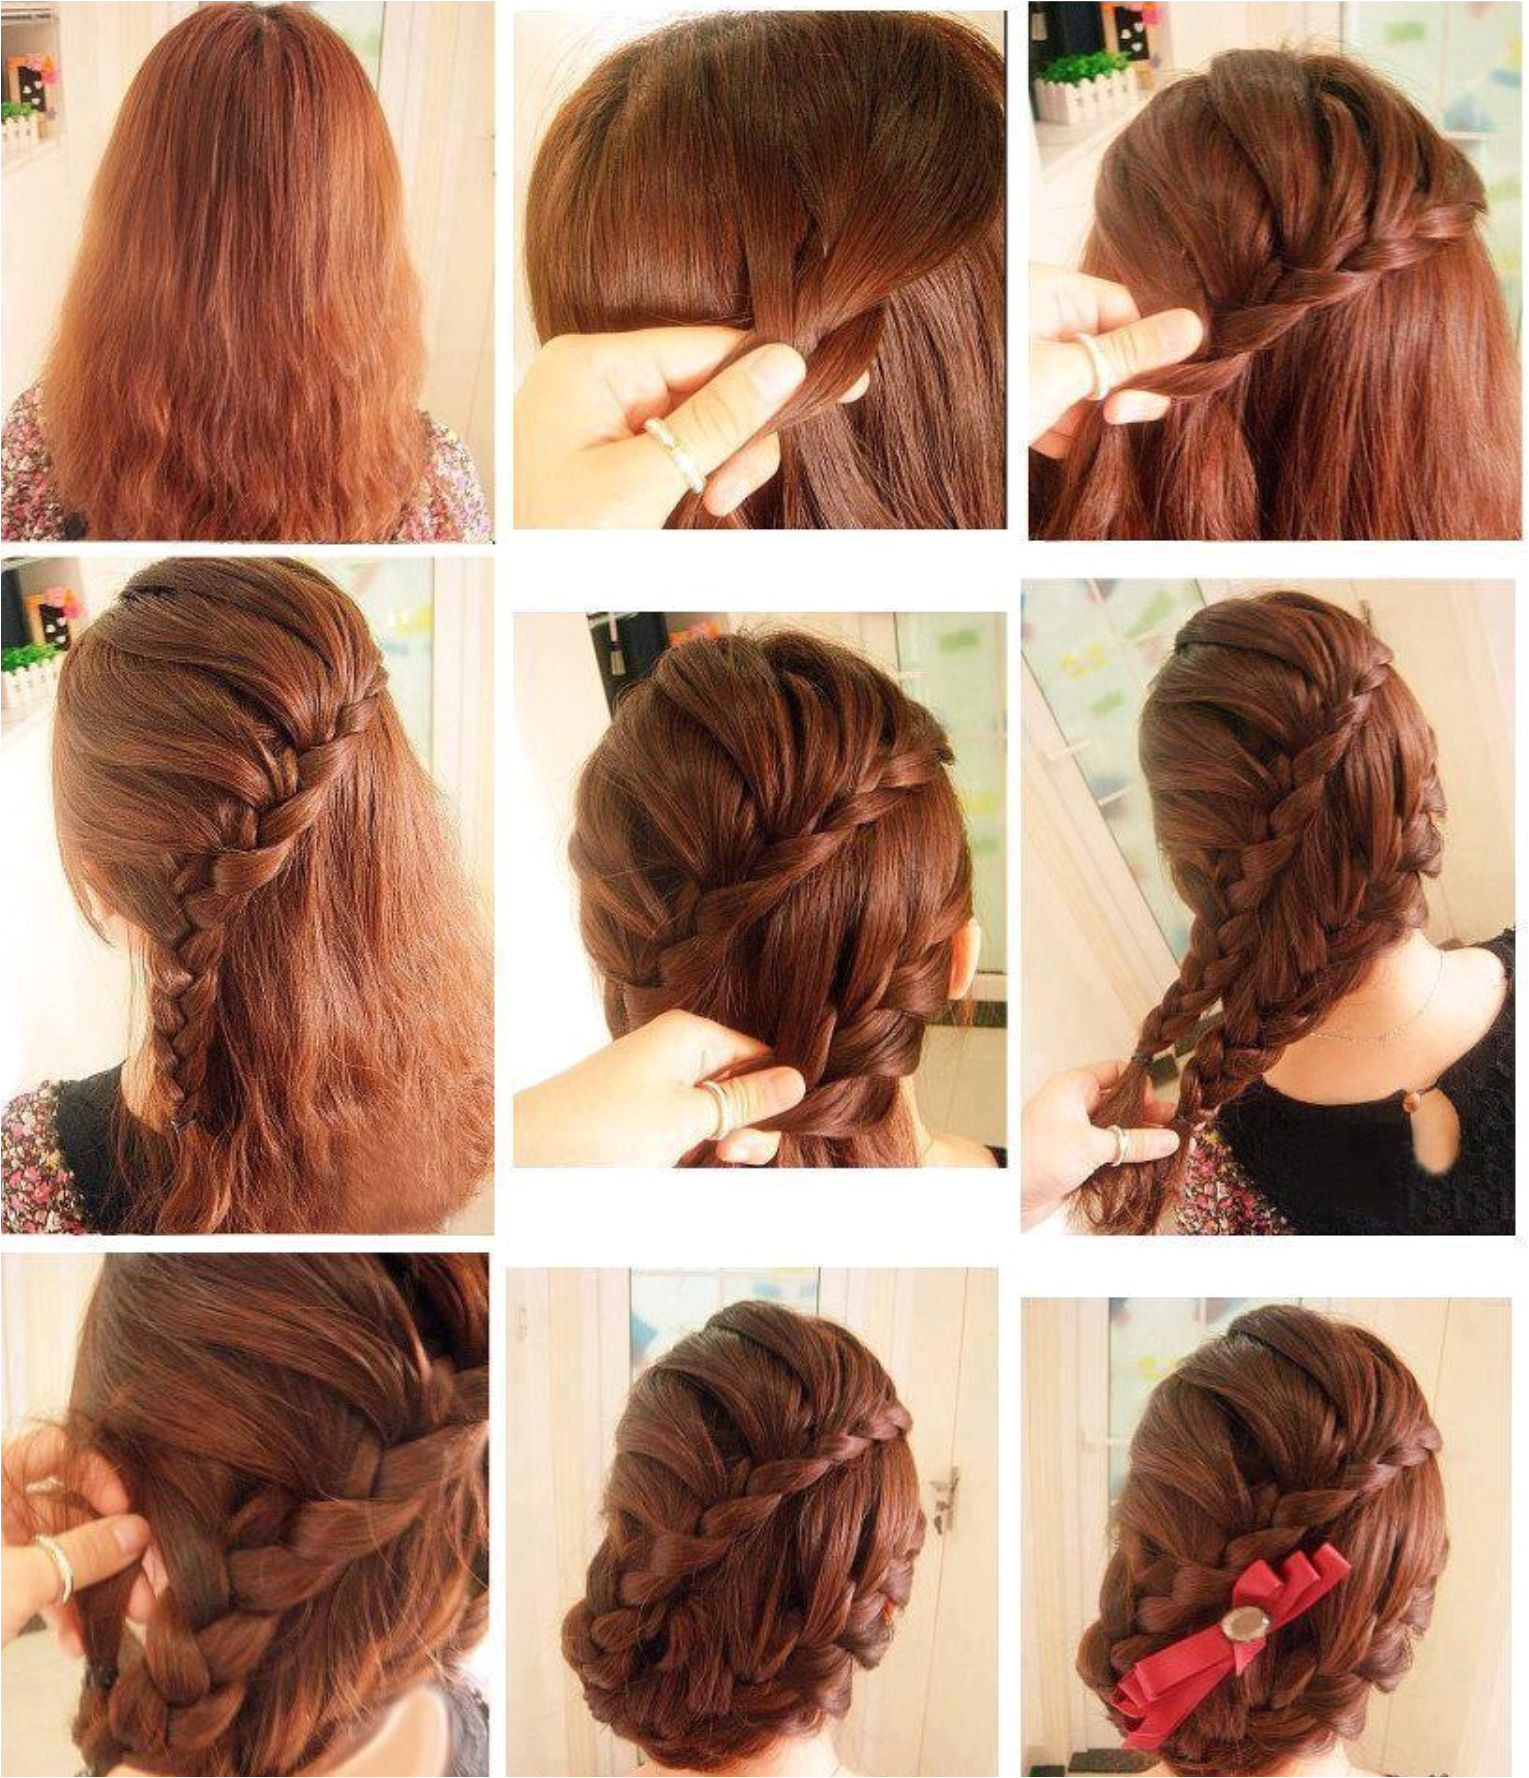 Imagine if you are about to attend a party or some special event like wedding and you are short of time to visit hairdresser Latest Long Hair step by step